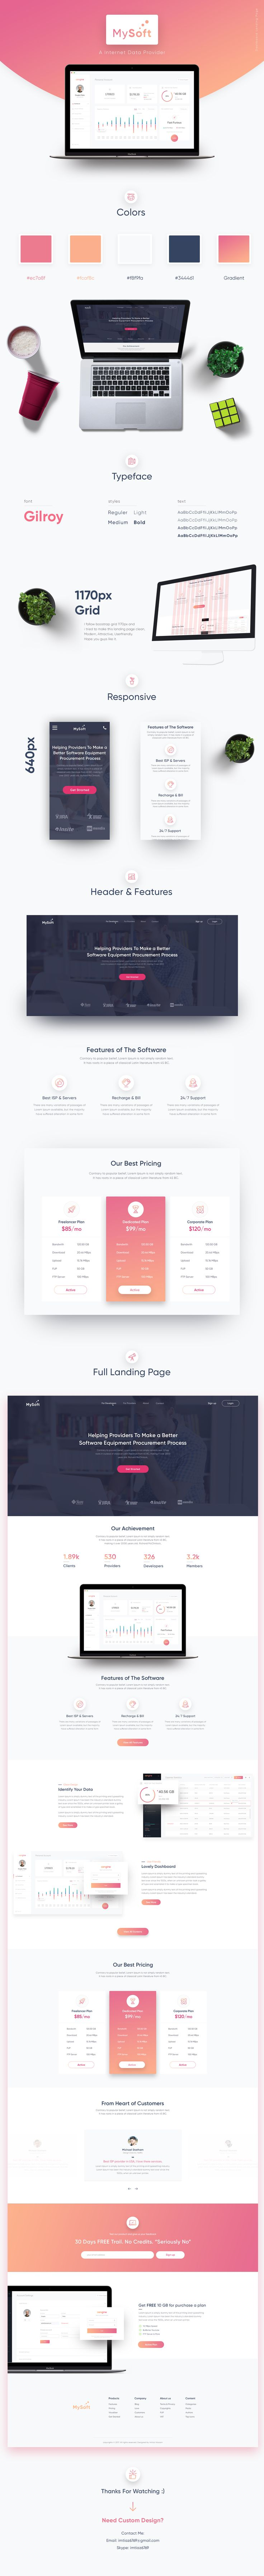 Dashboard_Landing Page. If you're a user experience professional, listen to The UX Blog Podcast on iTunes.